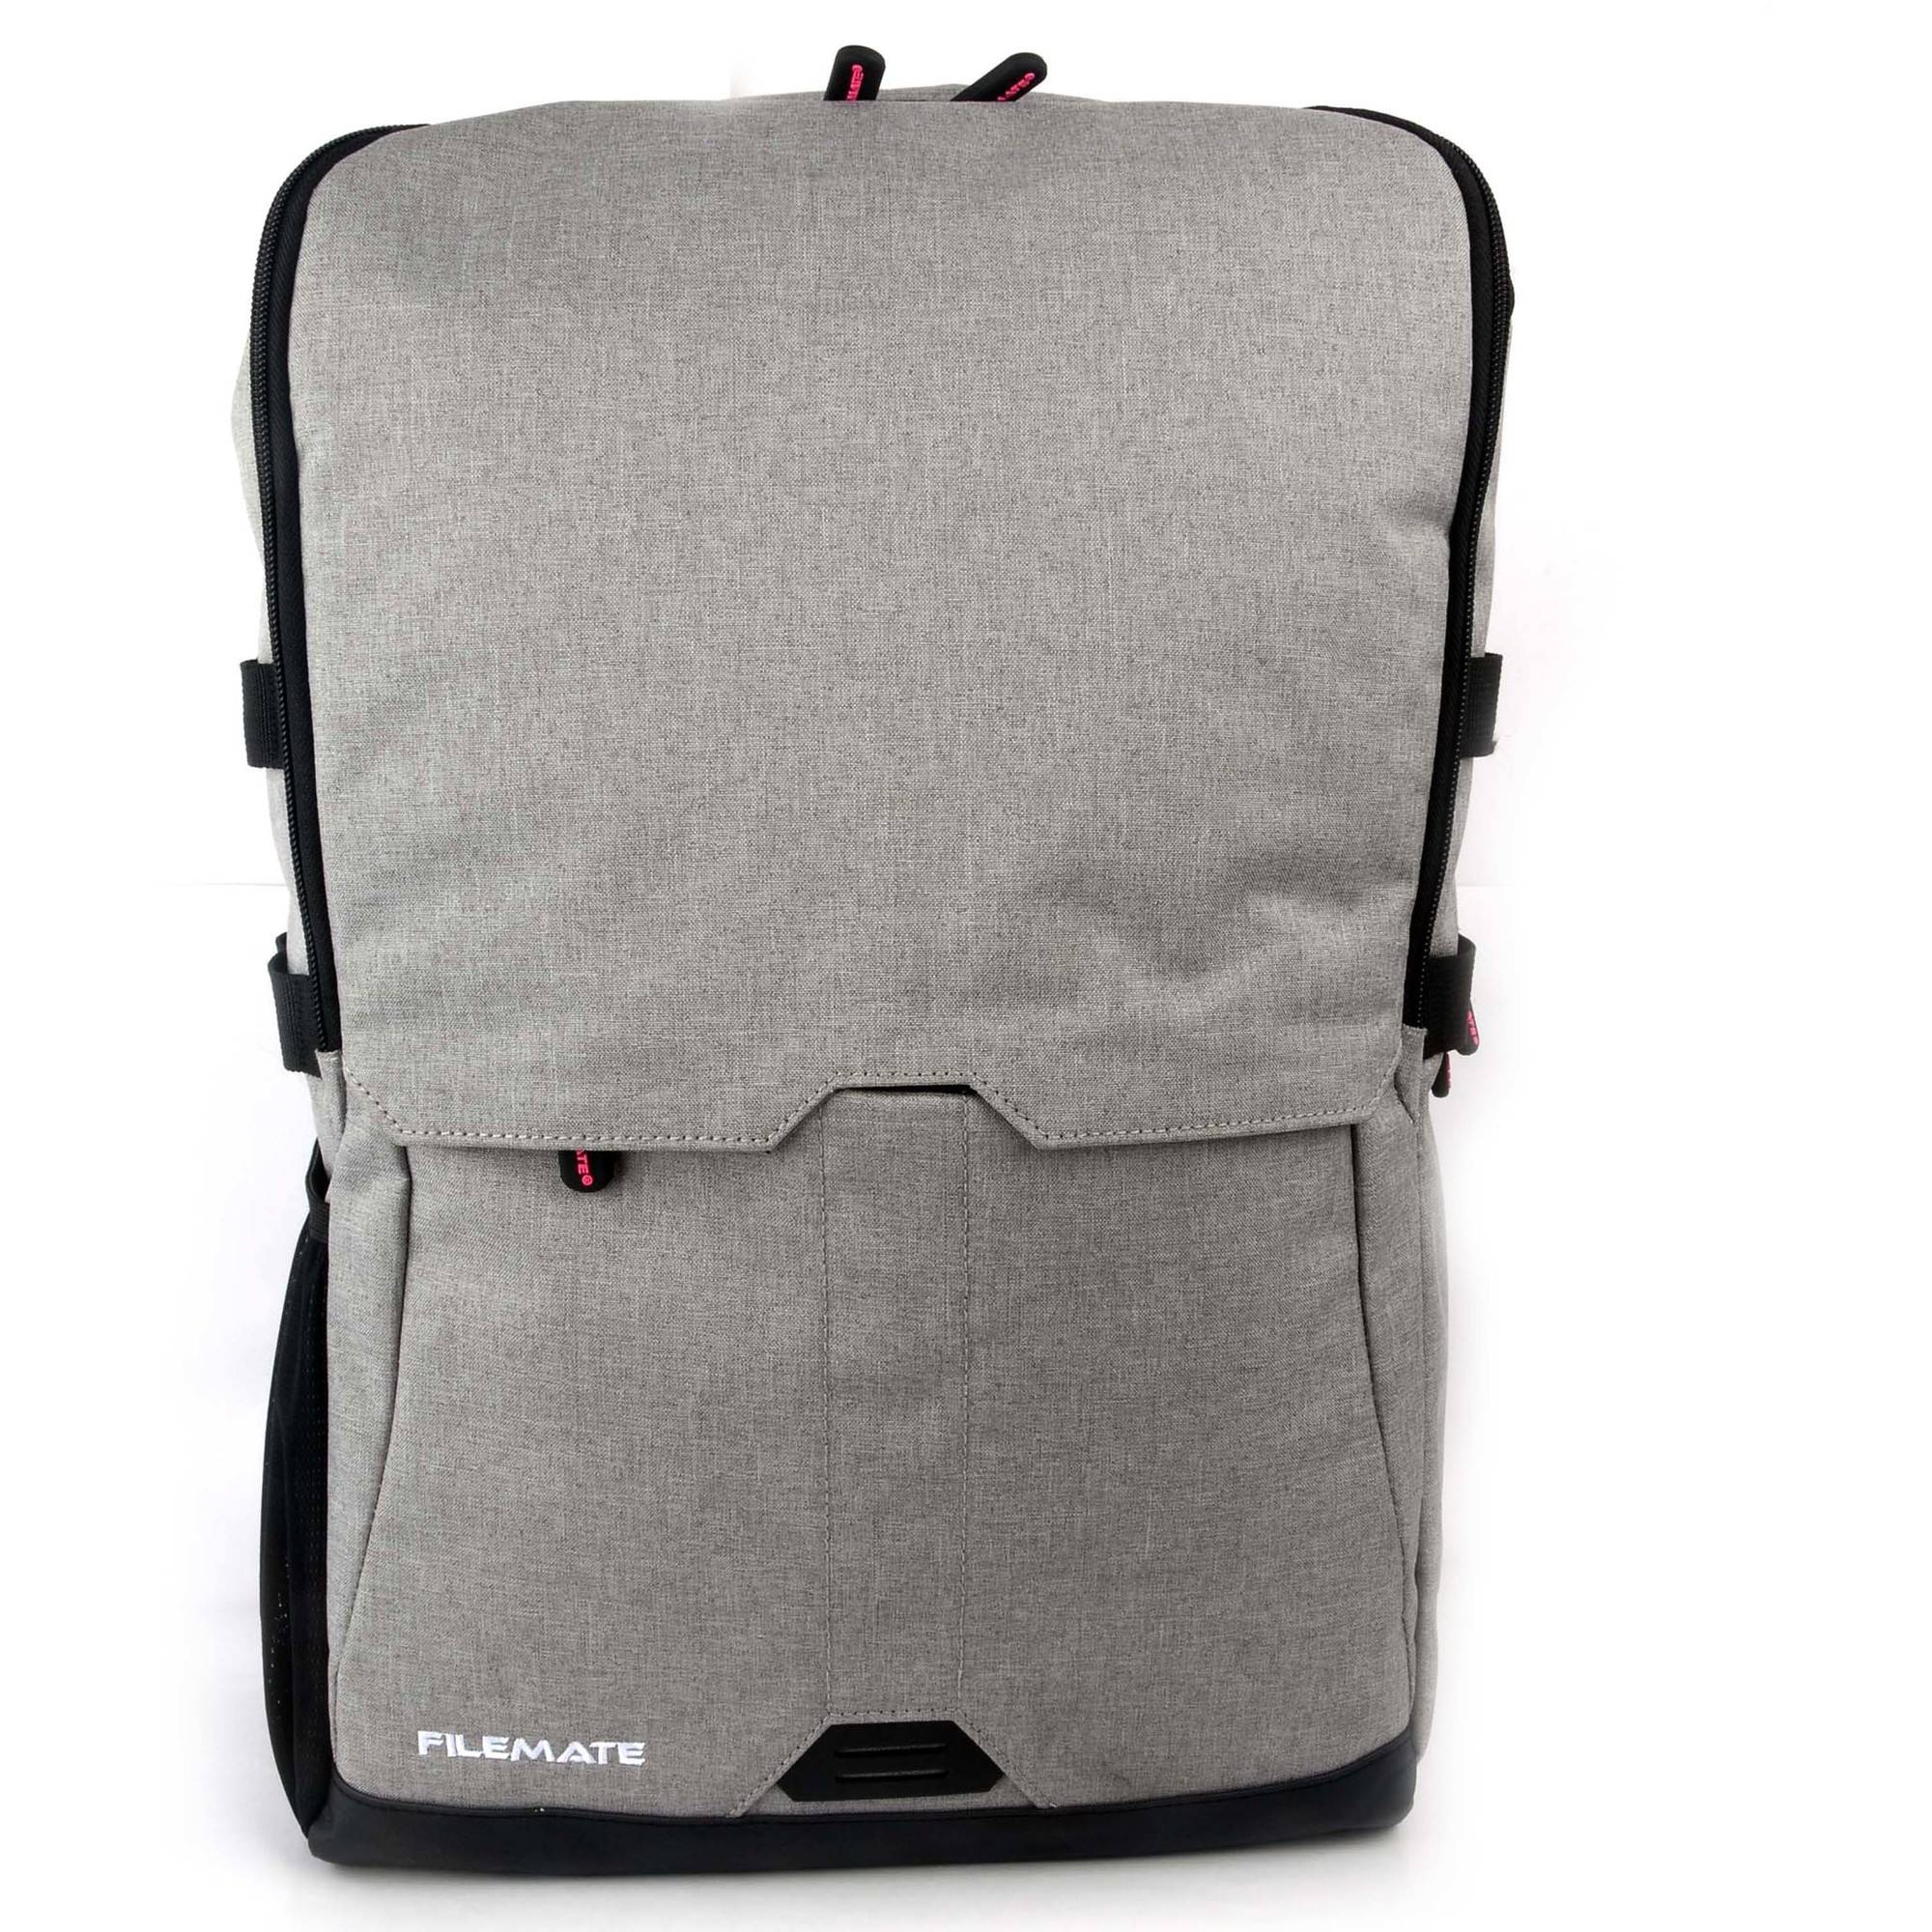 "FileMate Contempo Padded RFID Protected 15.6"" Laptop Computer BackPack with 2 Acessory Pockets, Grey"